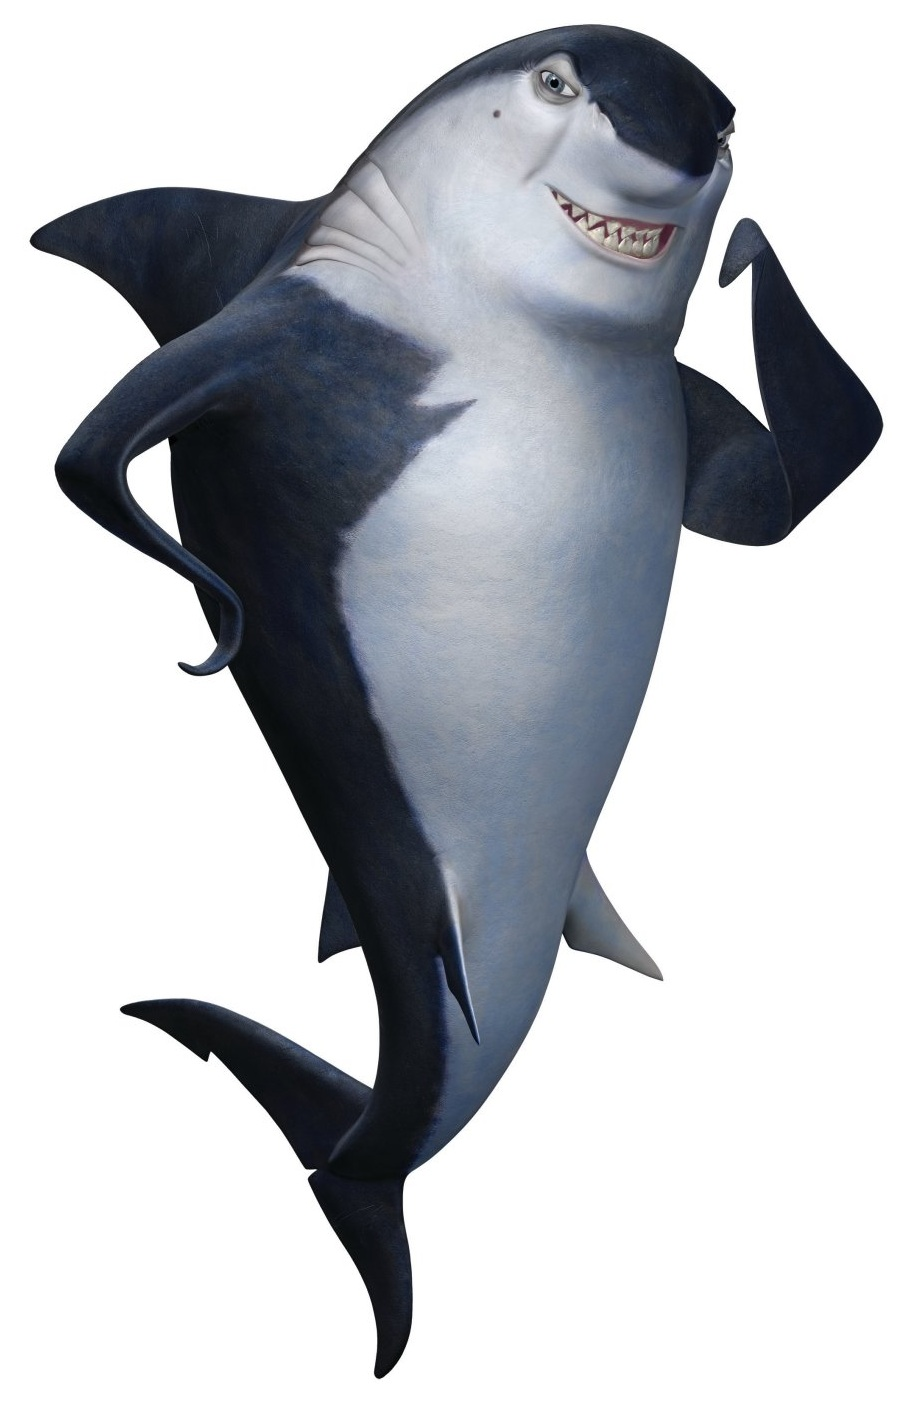 who does jack black play in shark tale